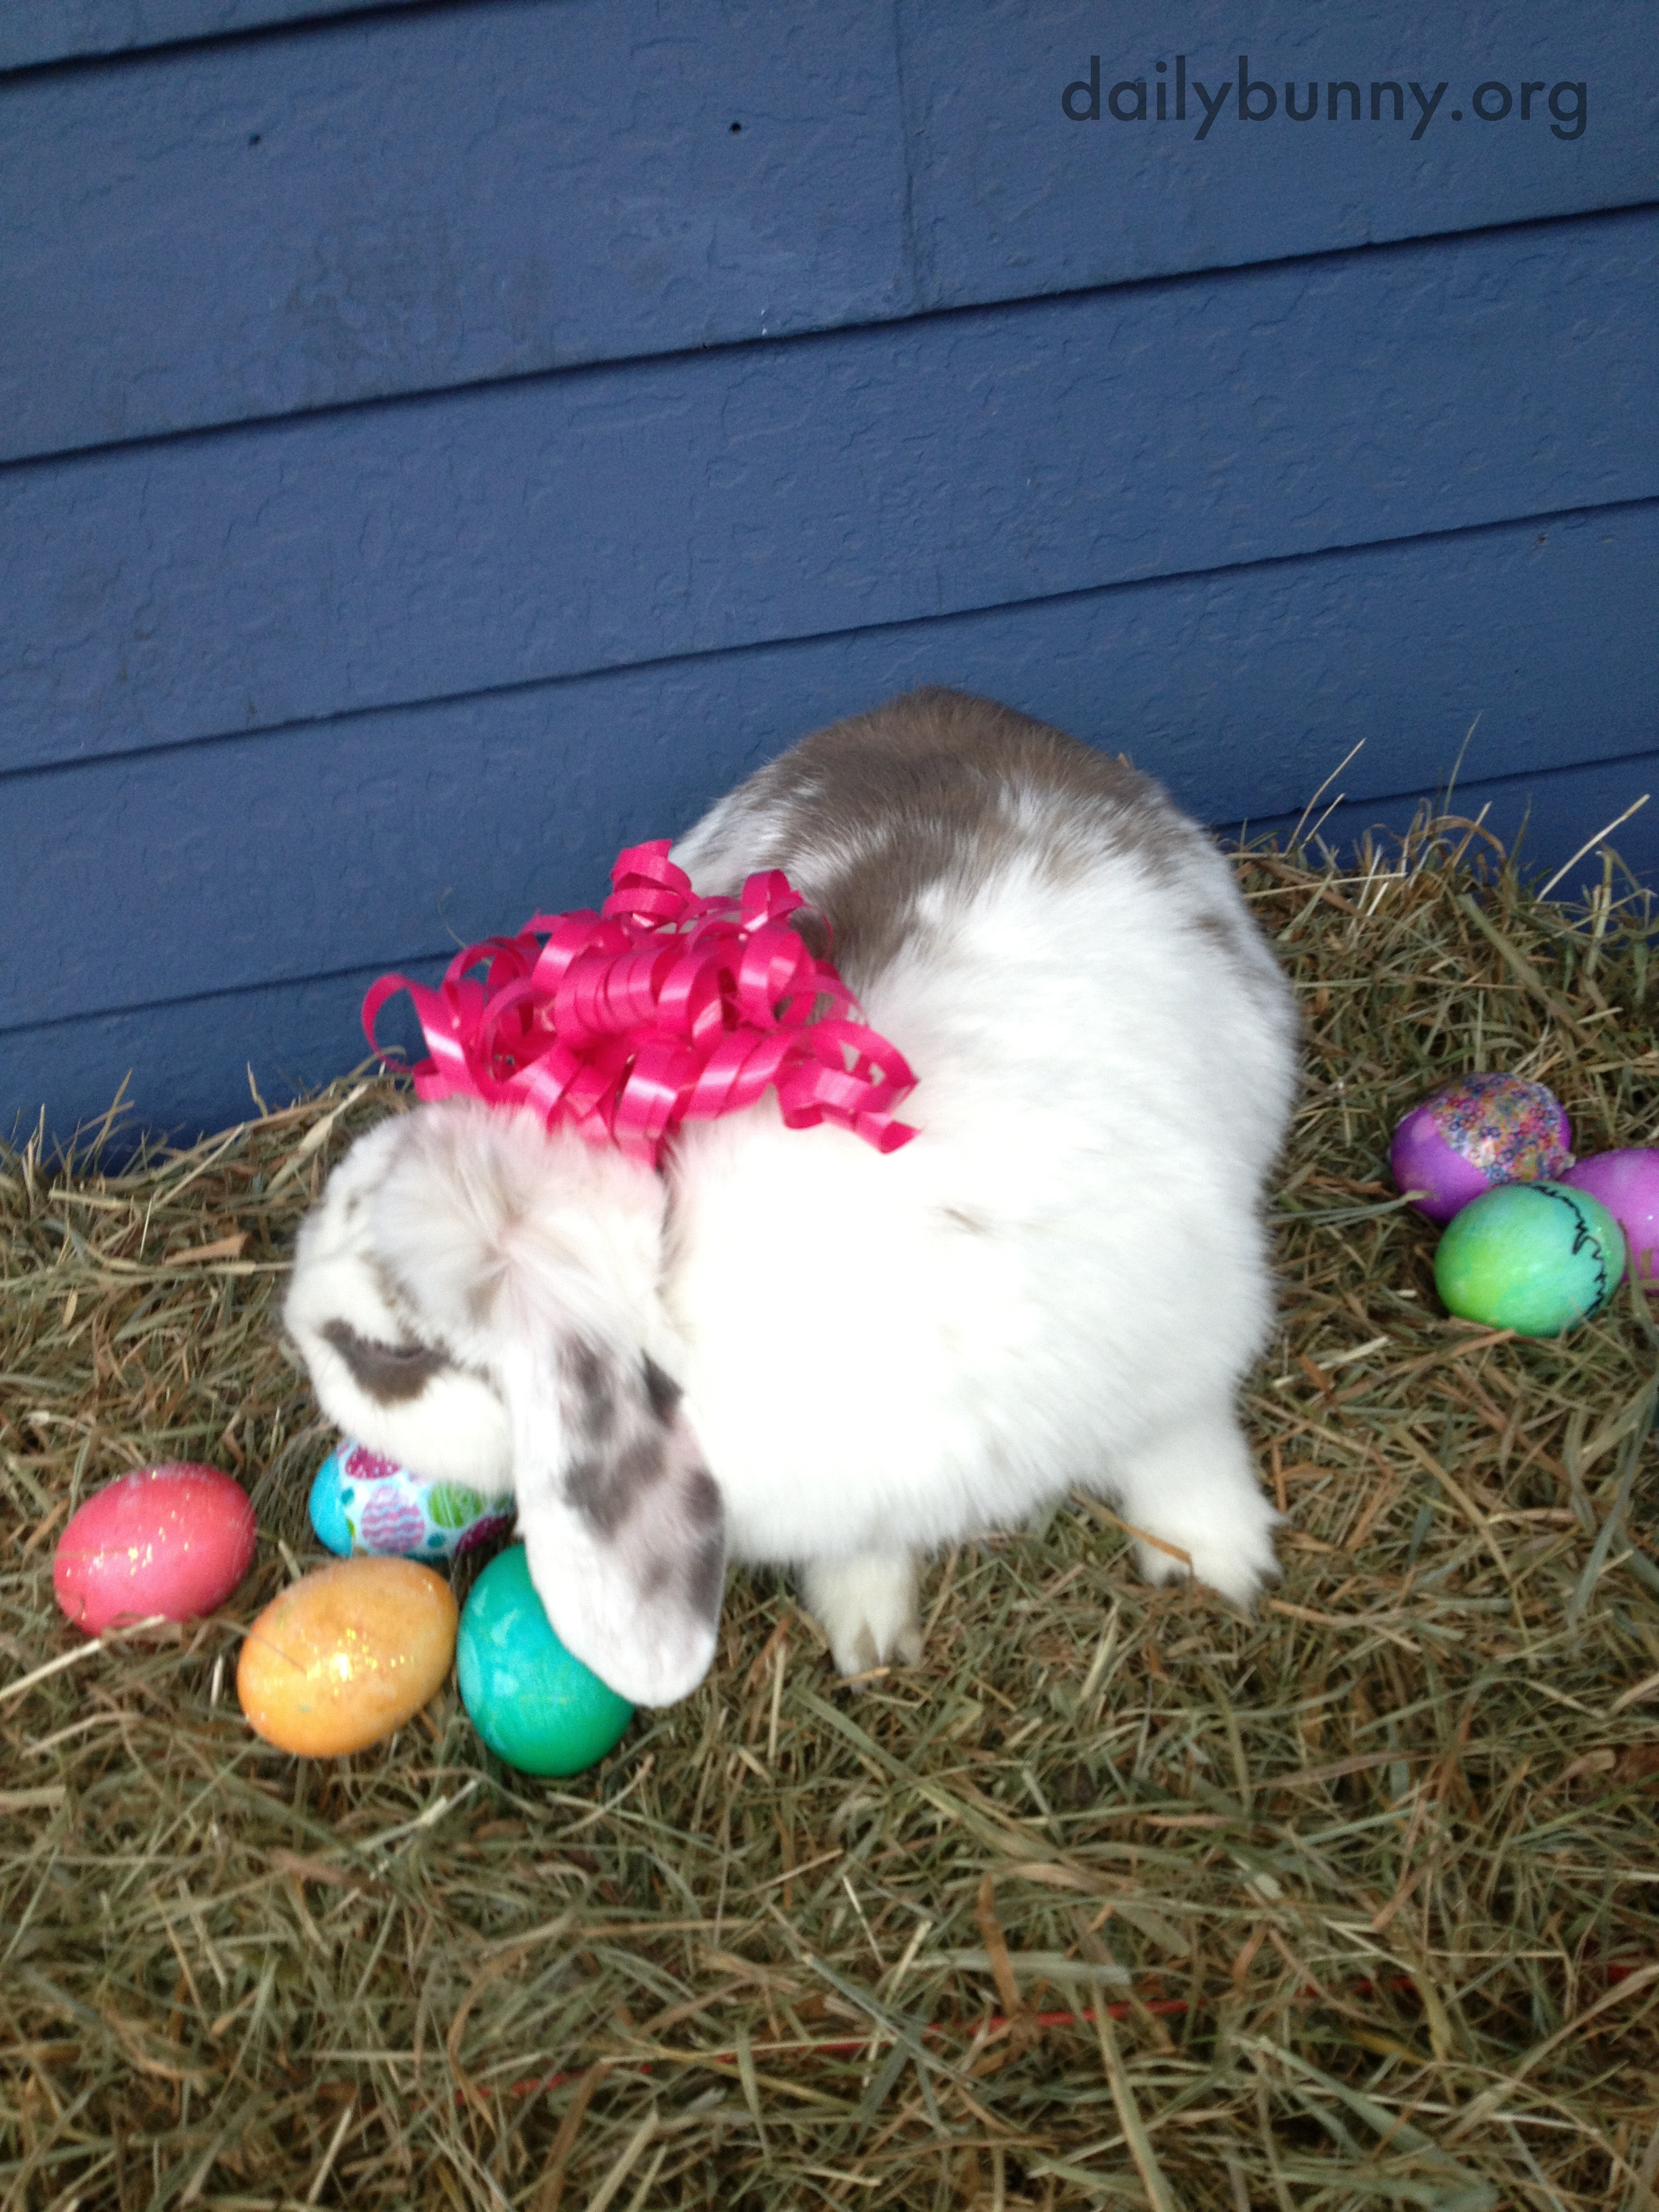 The Daily Bunny's Easter 2014 Mega-Post! 12